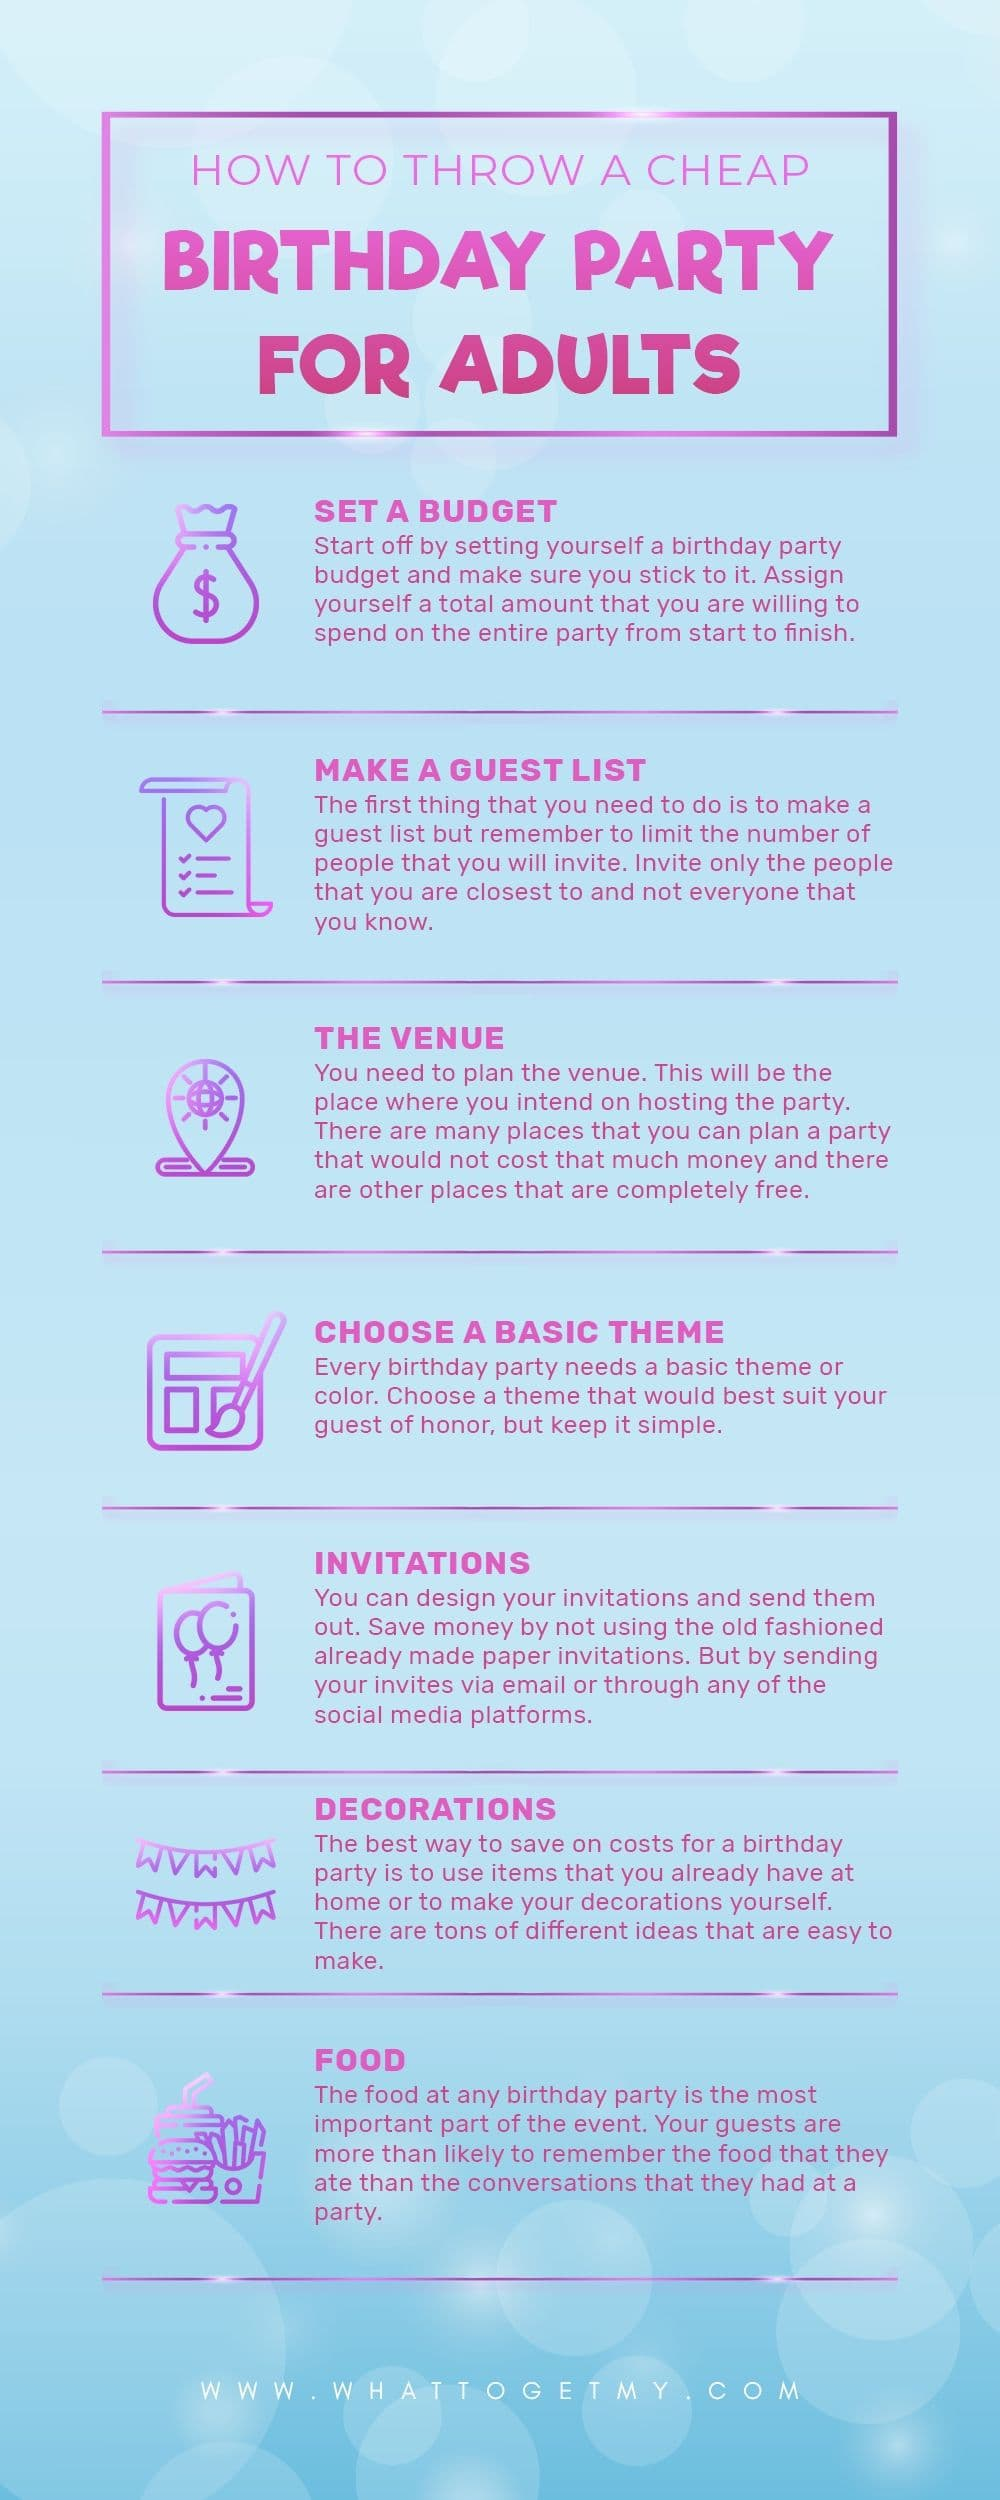 Infographic How To Throw A Cheap Birthday Party For Adults